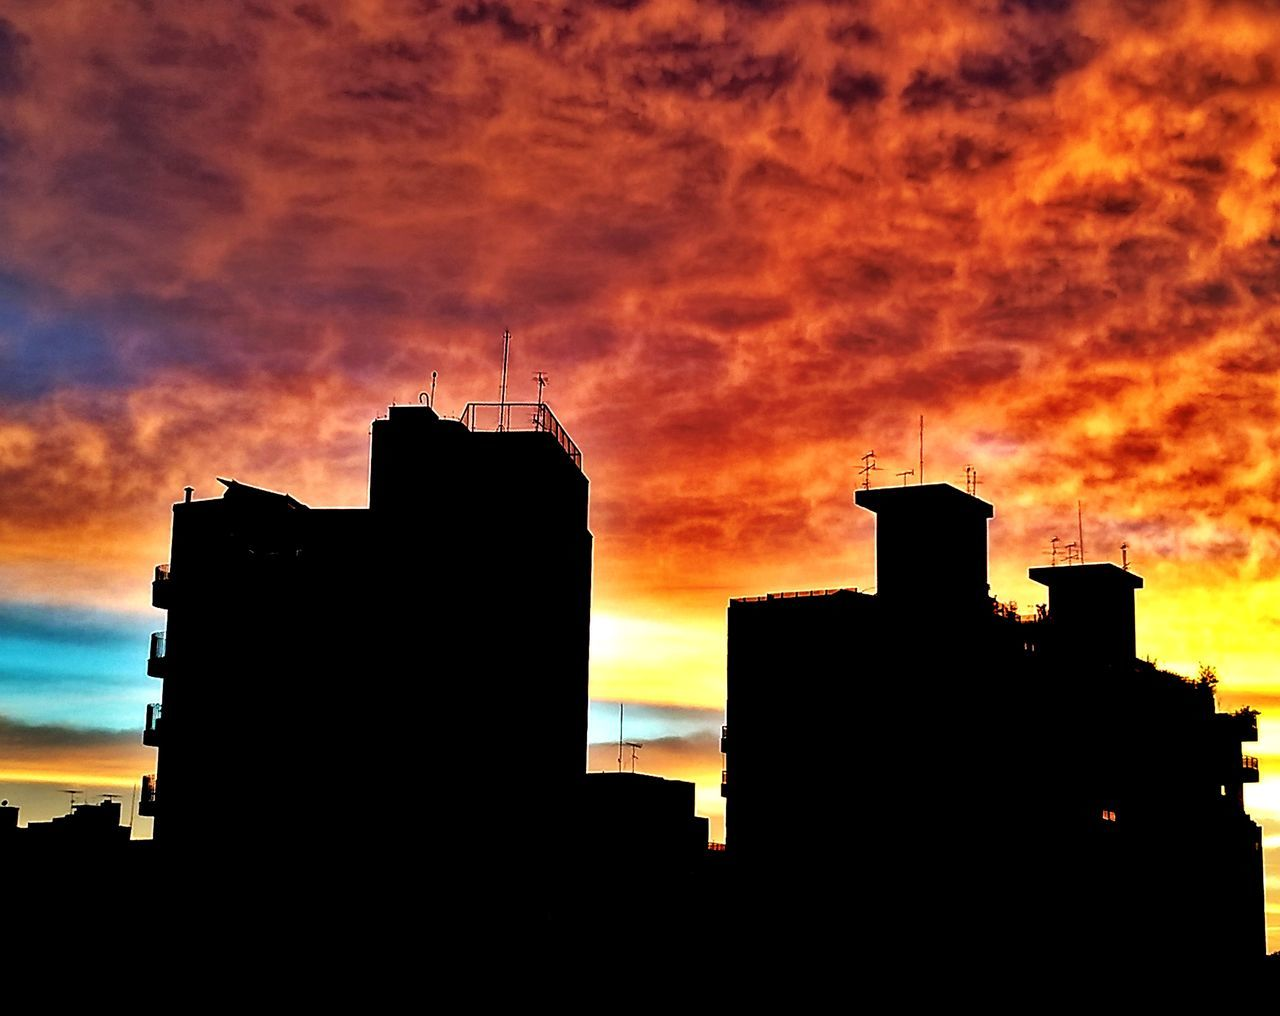 silhouette, sunset, architecture, orange color, building exterior, built structure, sky, cloud - sky, building, nature, no people, outdoors, city, dramatic sky, residential district, beauty in nature, sunlight, low angle view, dark, factory, romantic sky